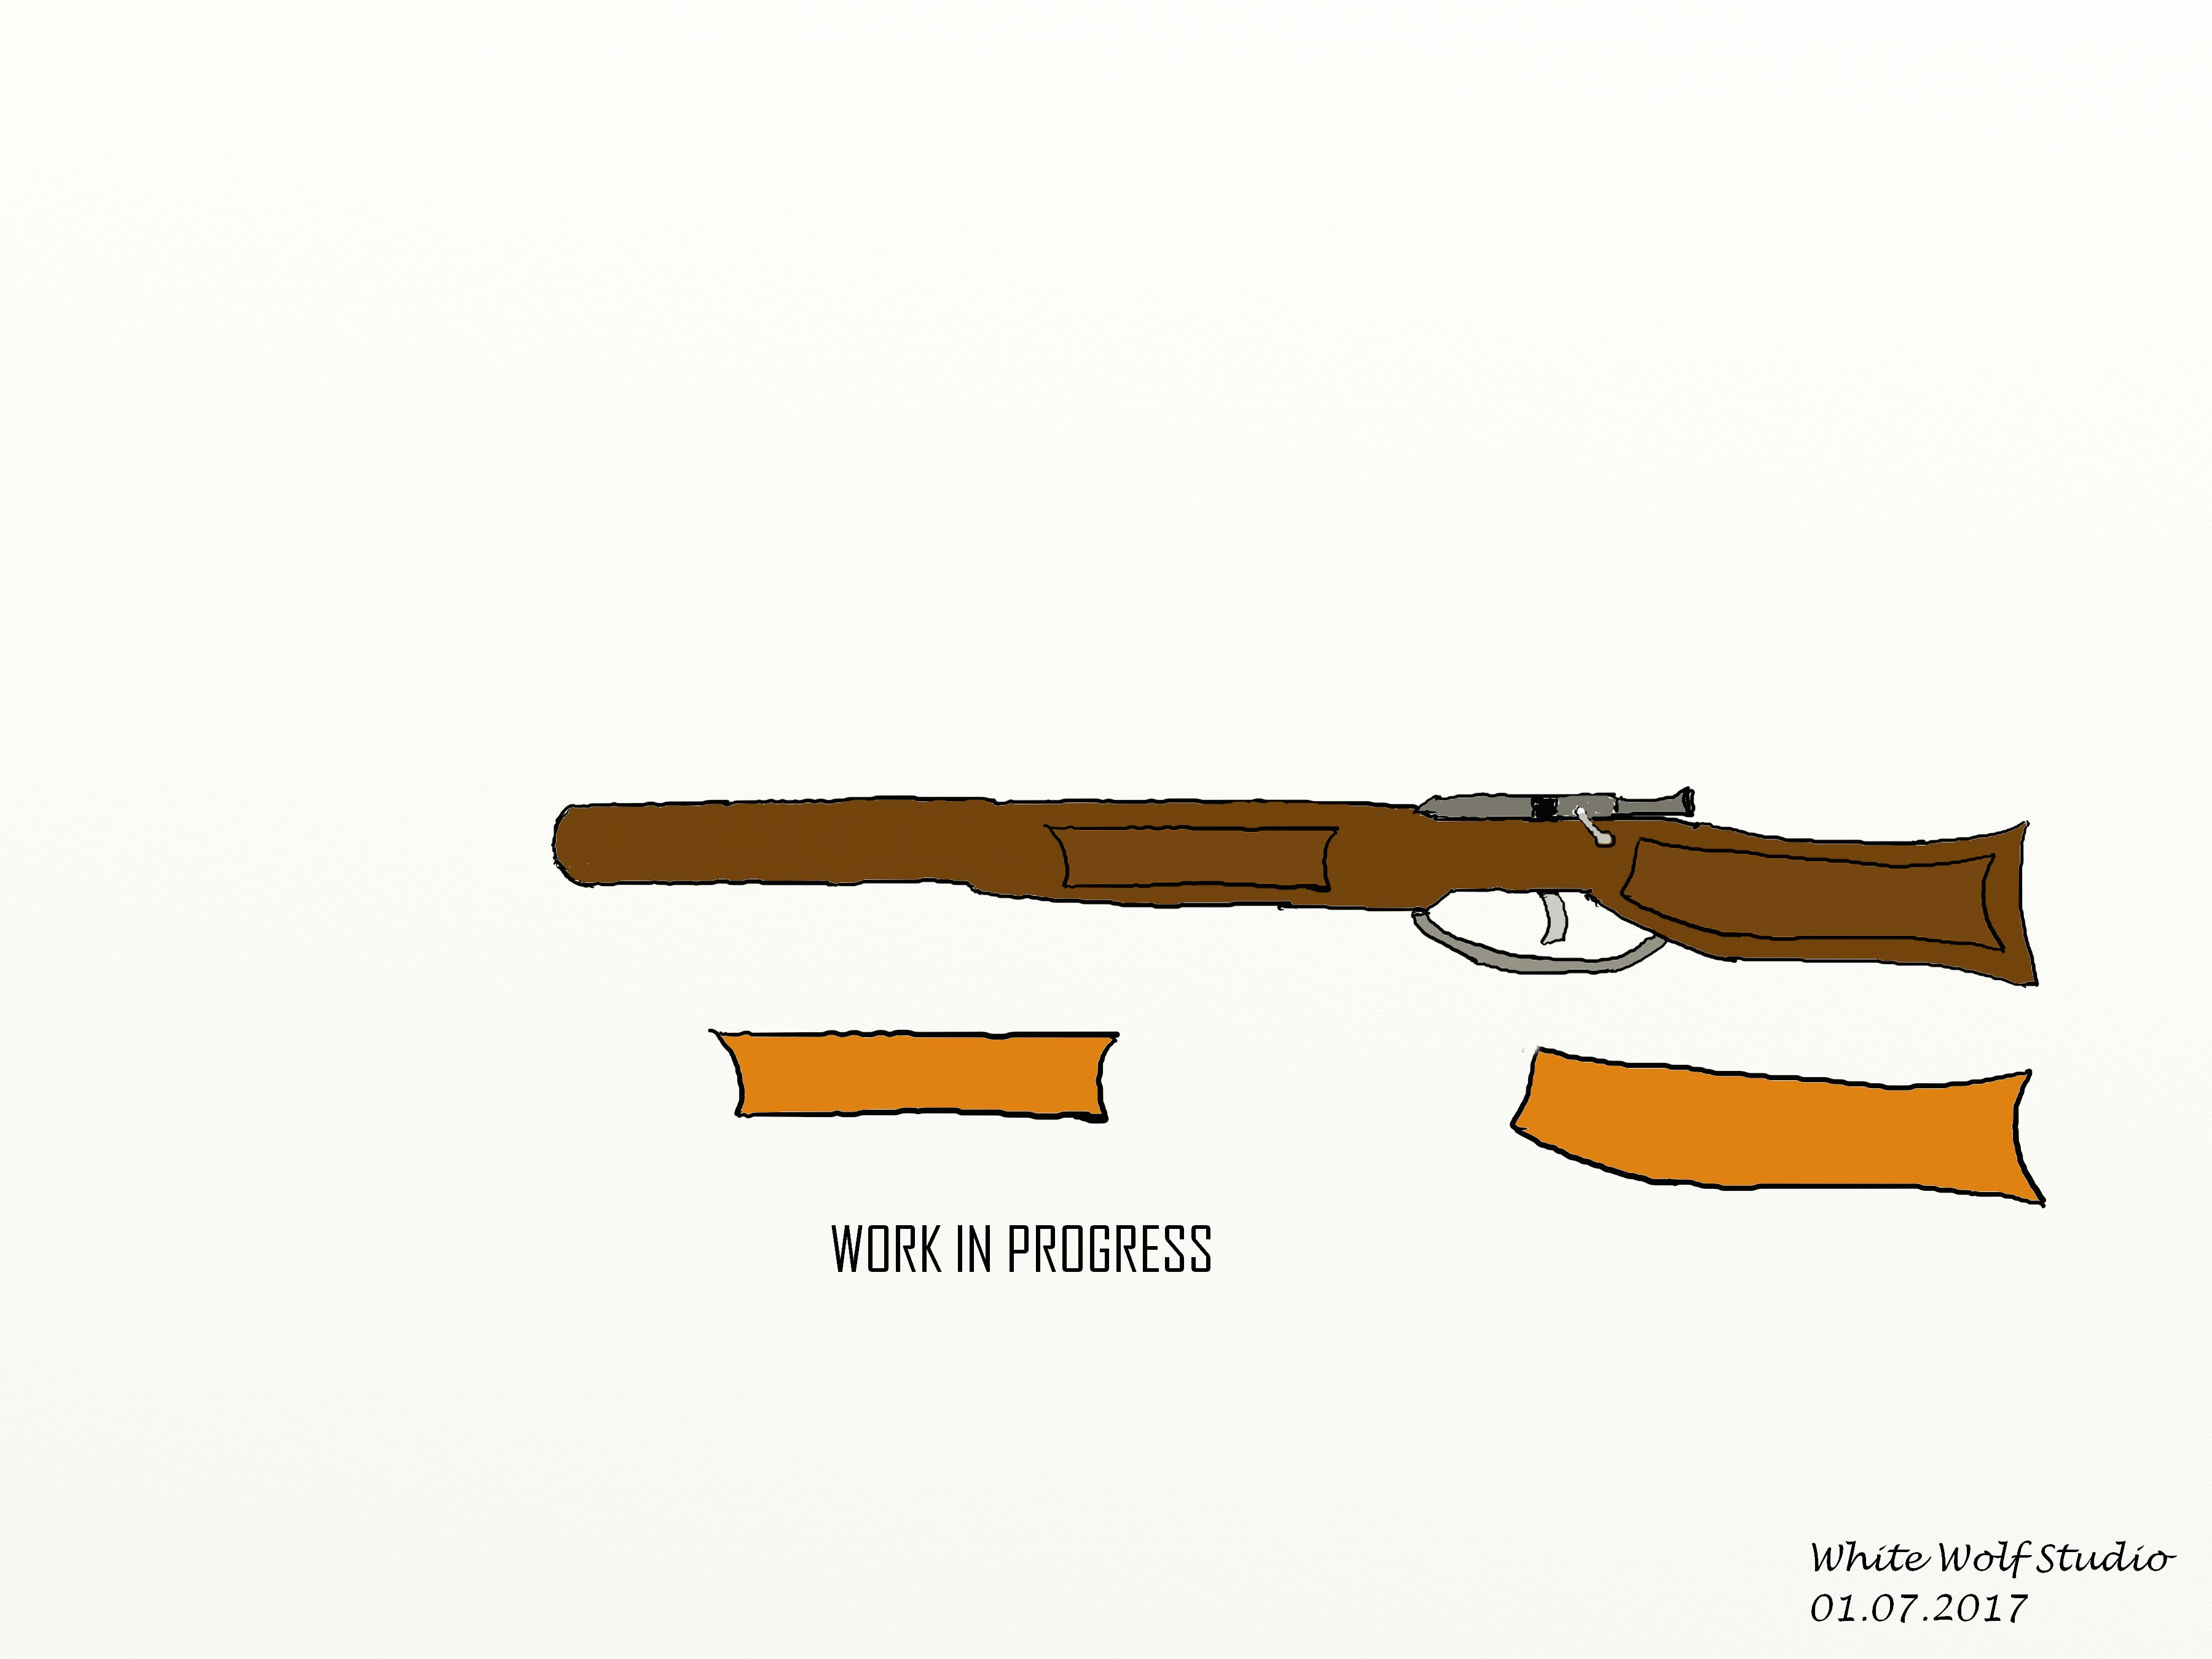 [WIP] Guns - Bolt Action Rifle